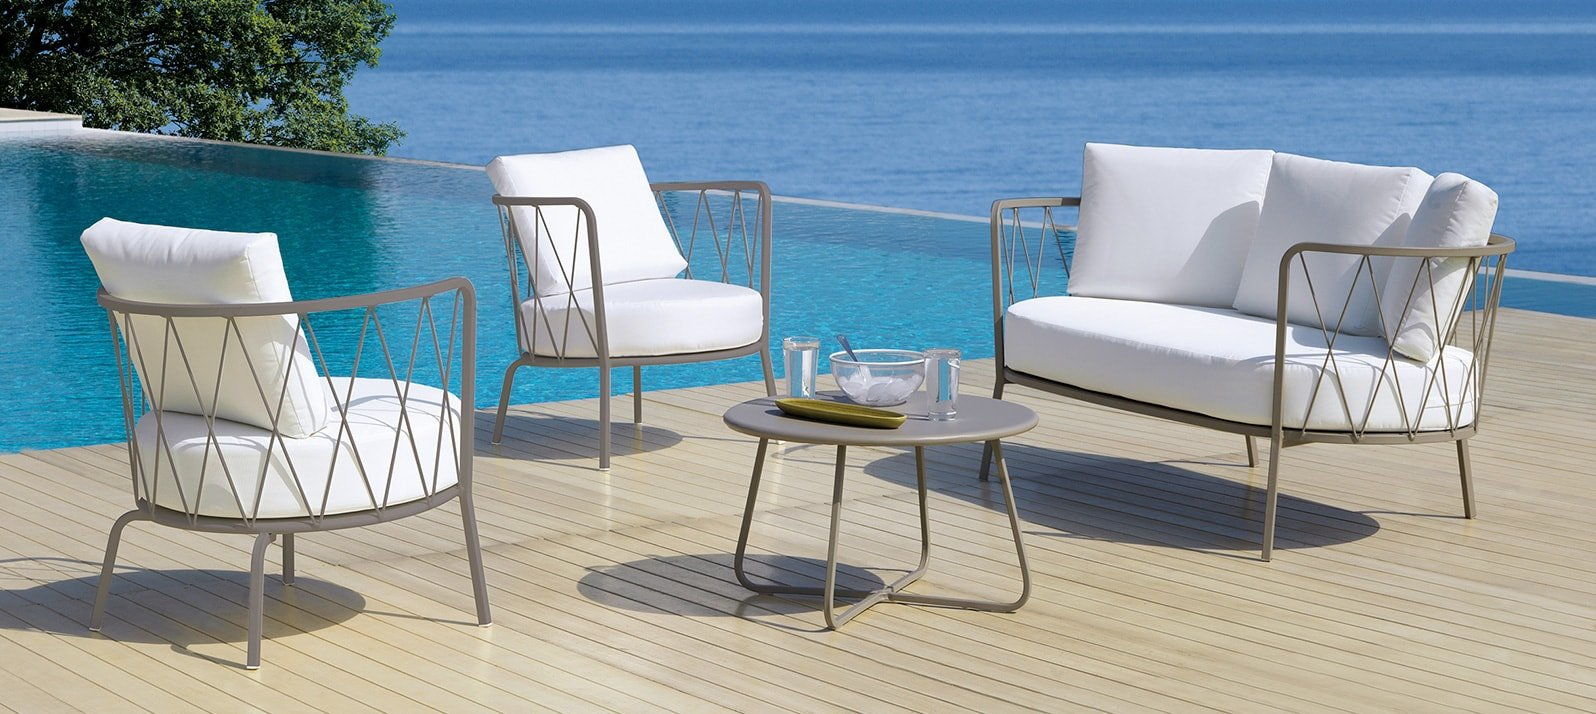 The ready to ship outdoor decor by Vermobil